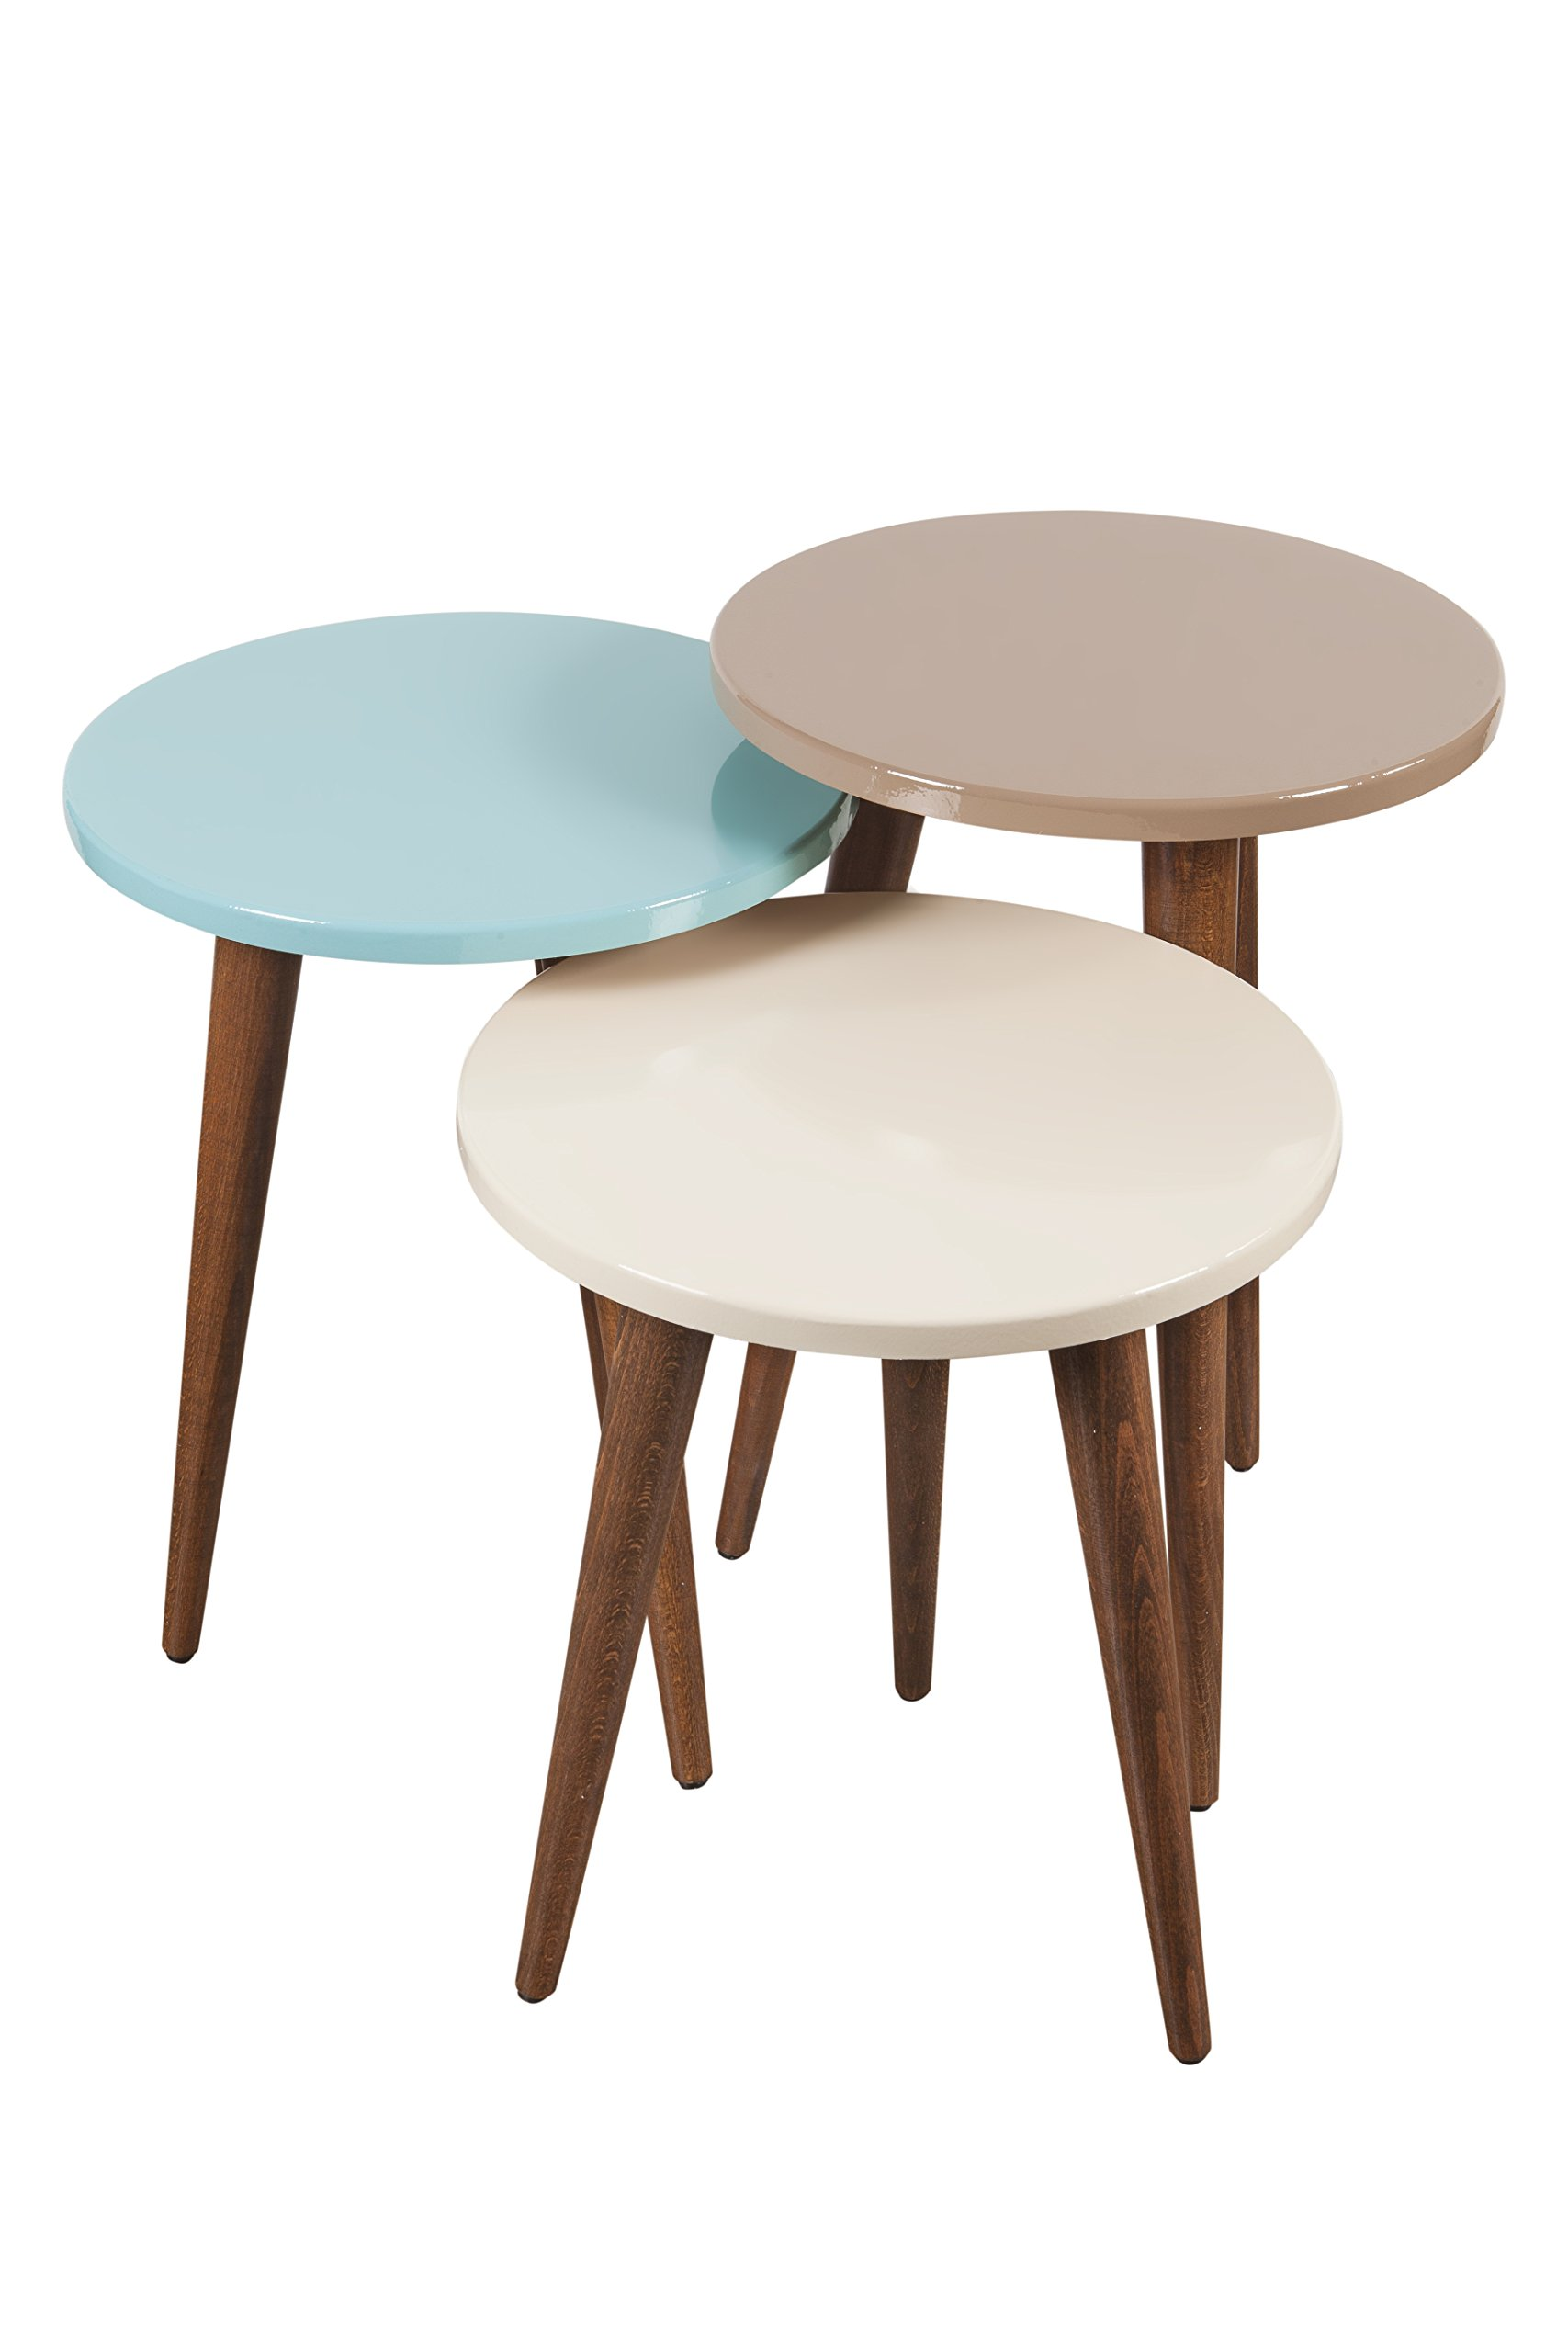 Decorotika - Tale 3-Piece Accent Coffee and Cocktail Table Set by Decorotika